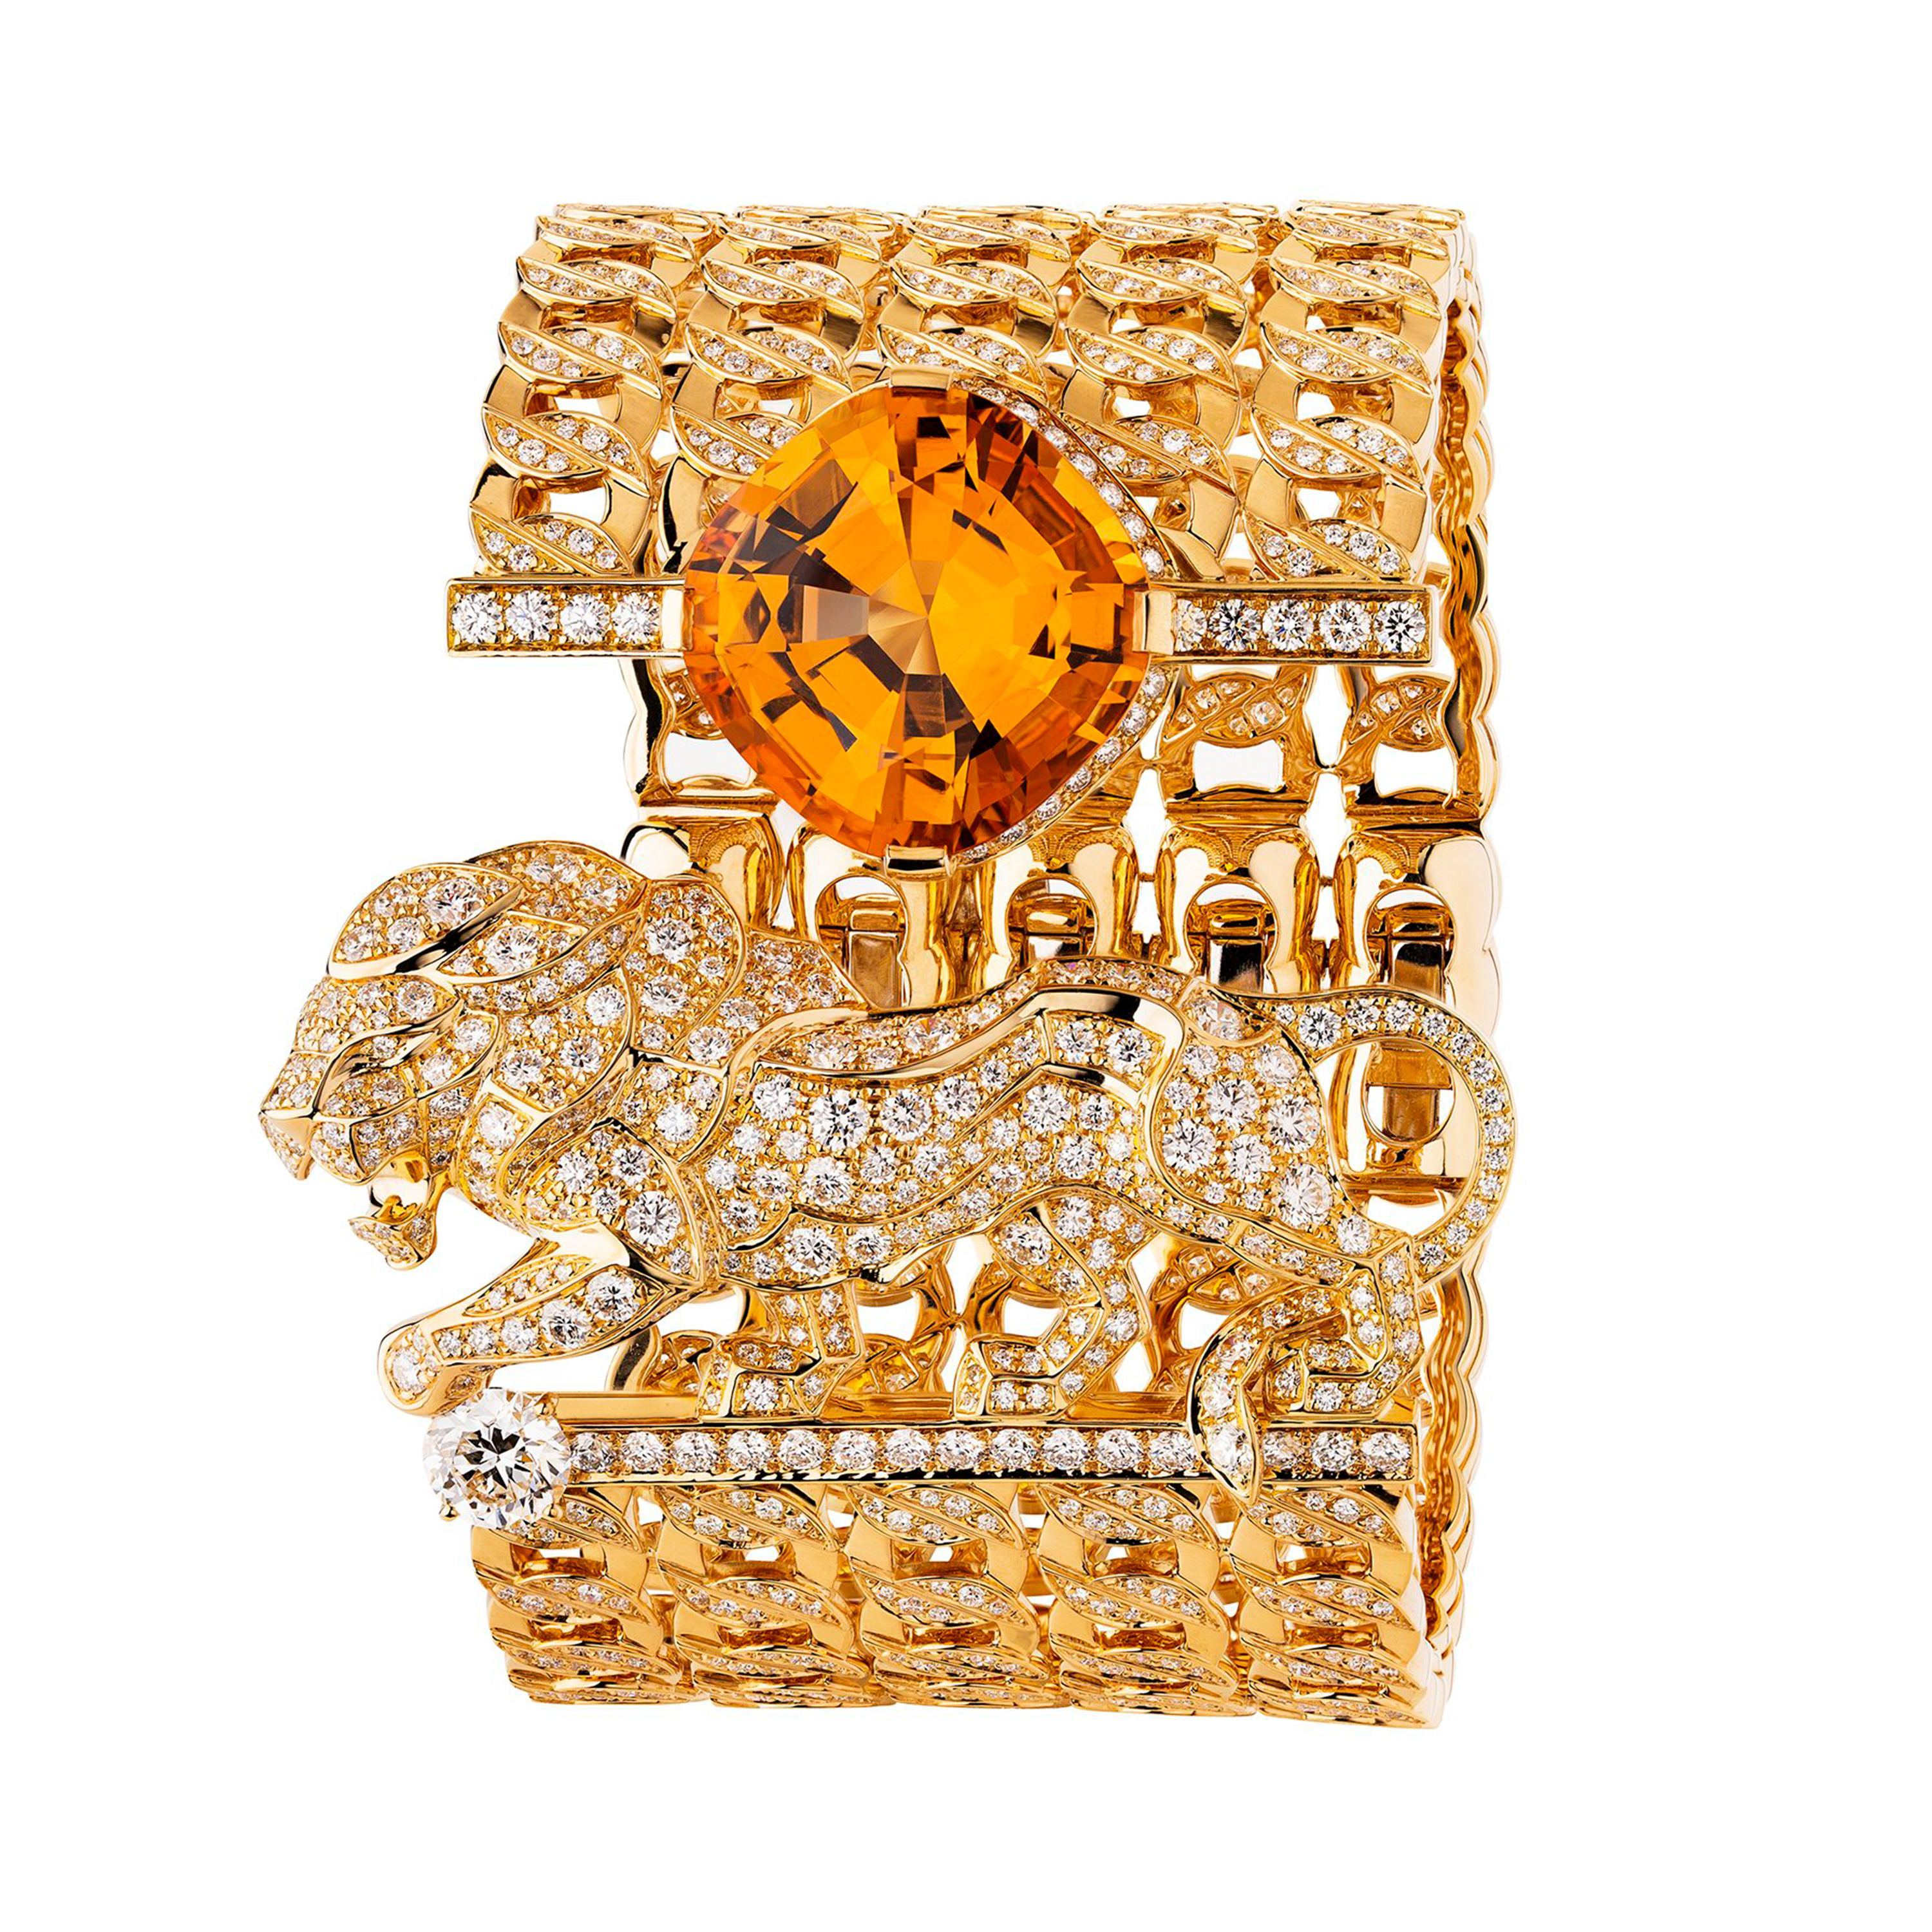 Chanel High Jewelry bracelet from the L'Esprit du Lion collection featuring a diamond-set lion and a cuff made up of four rows of rigid gold links